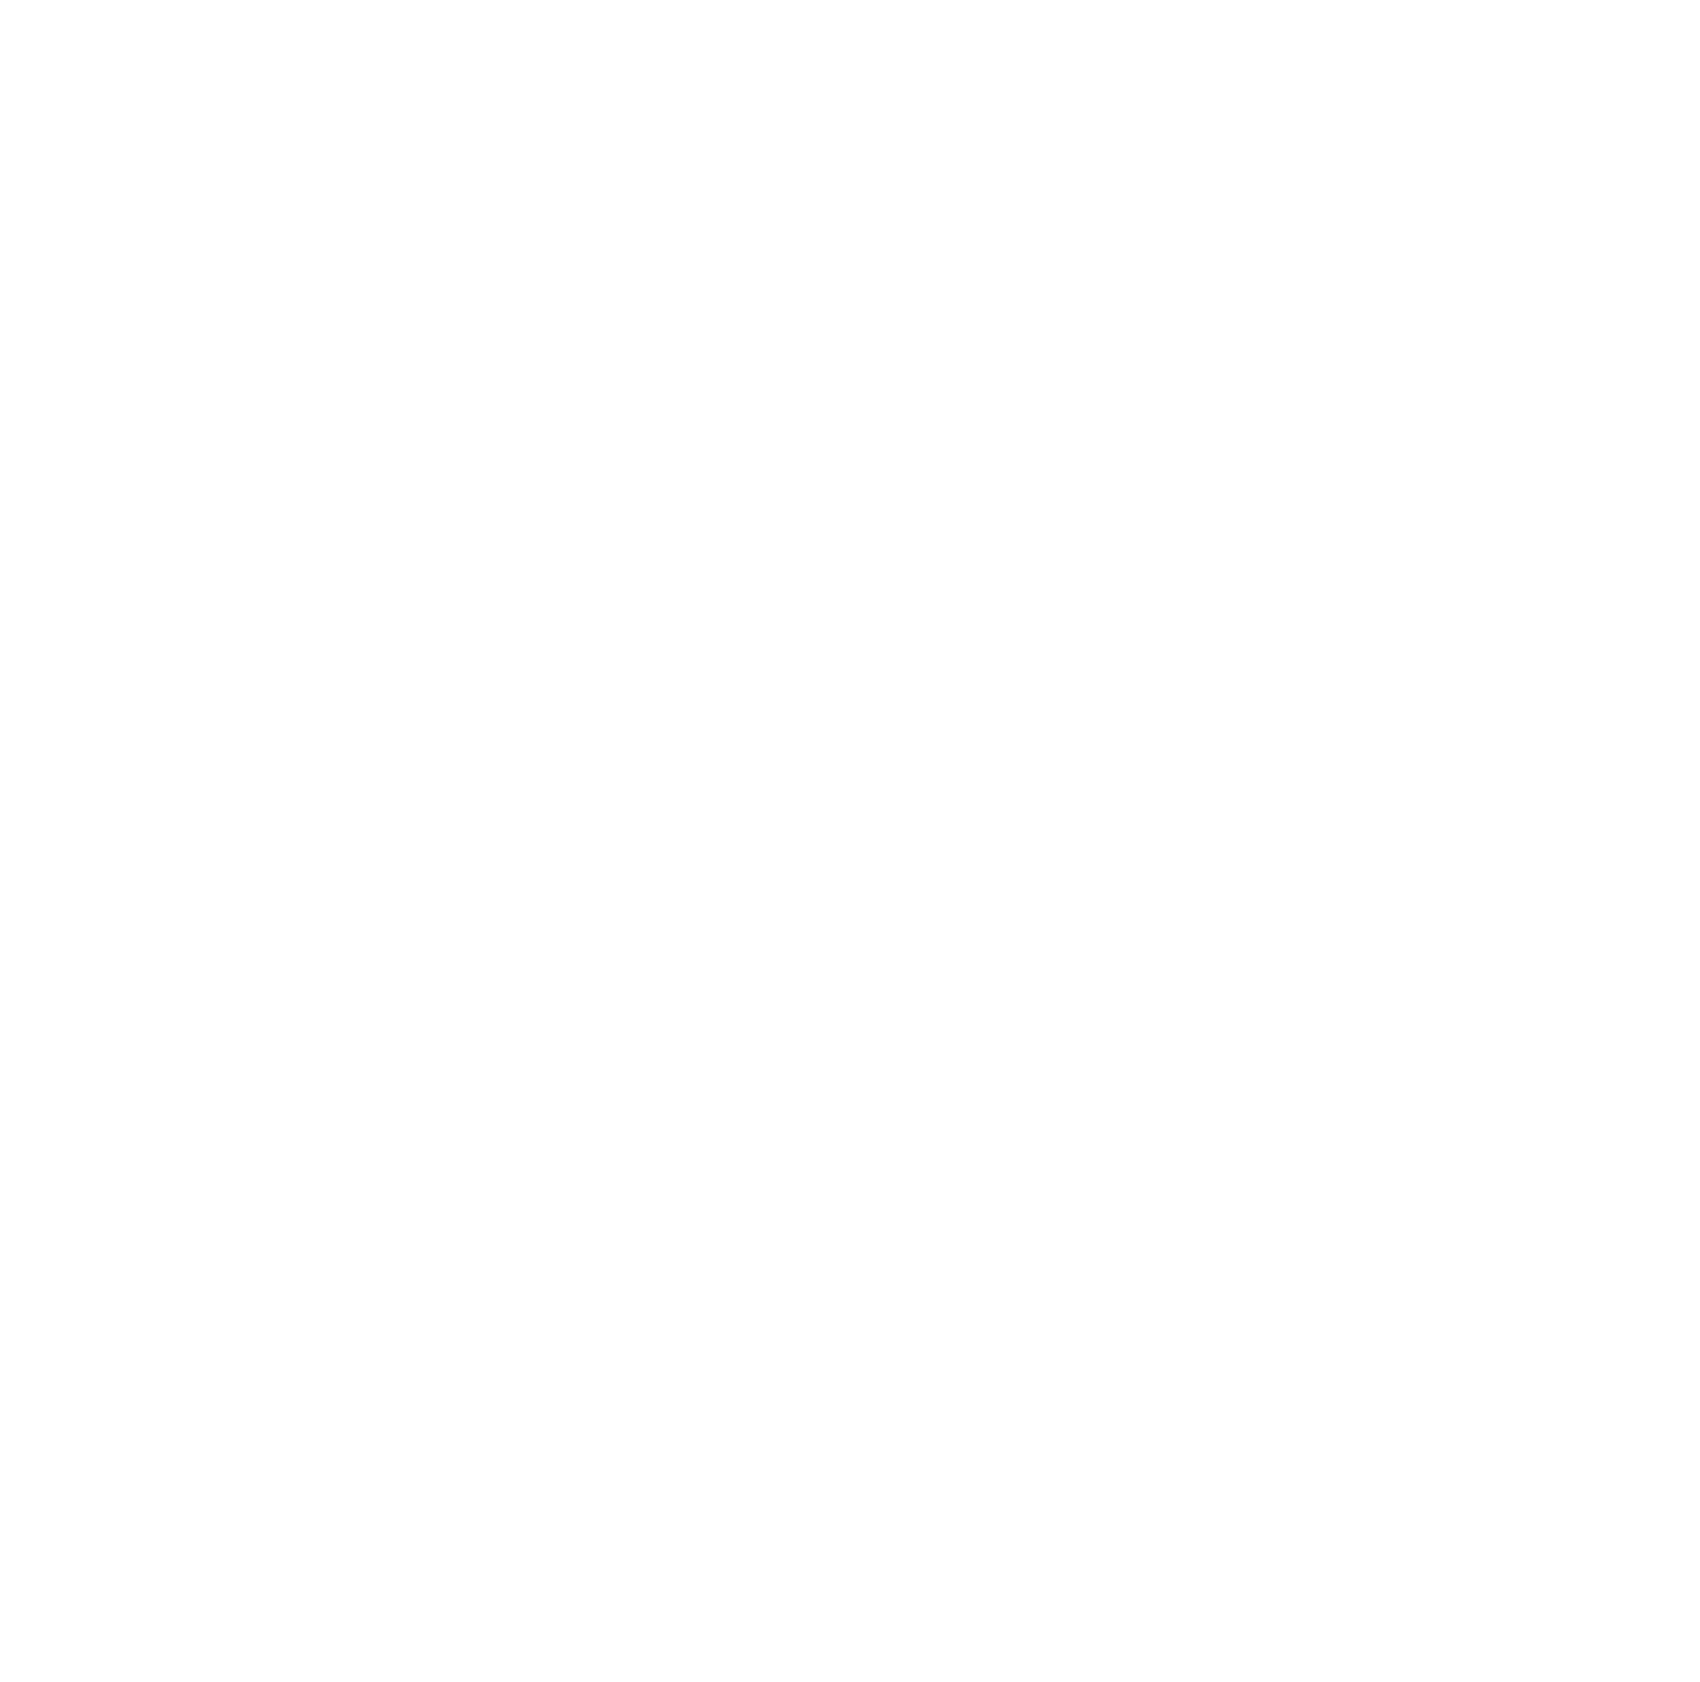 ArtCastle Tattoo Zeist